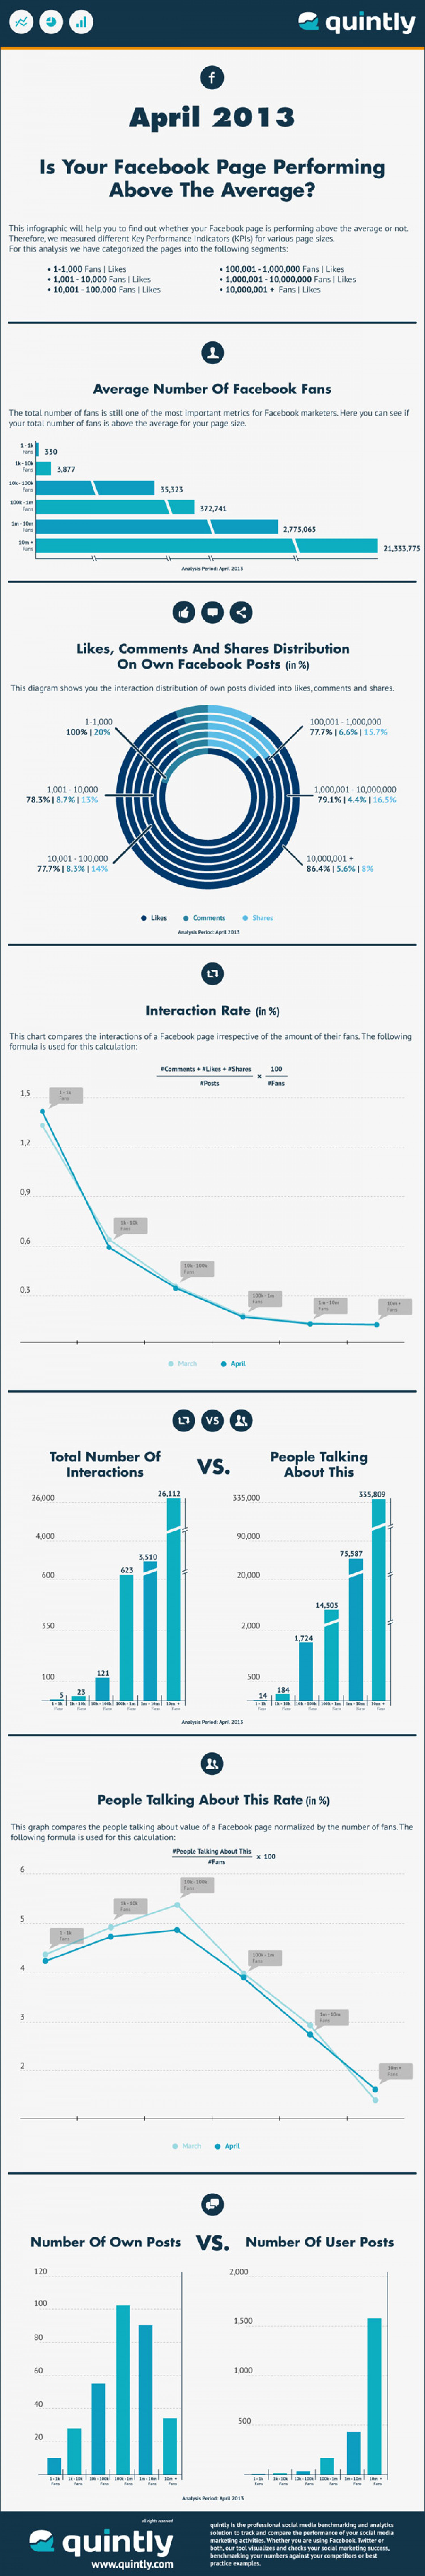 Is Your Facebook Page Performing Above Or Below Average? Infographic